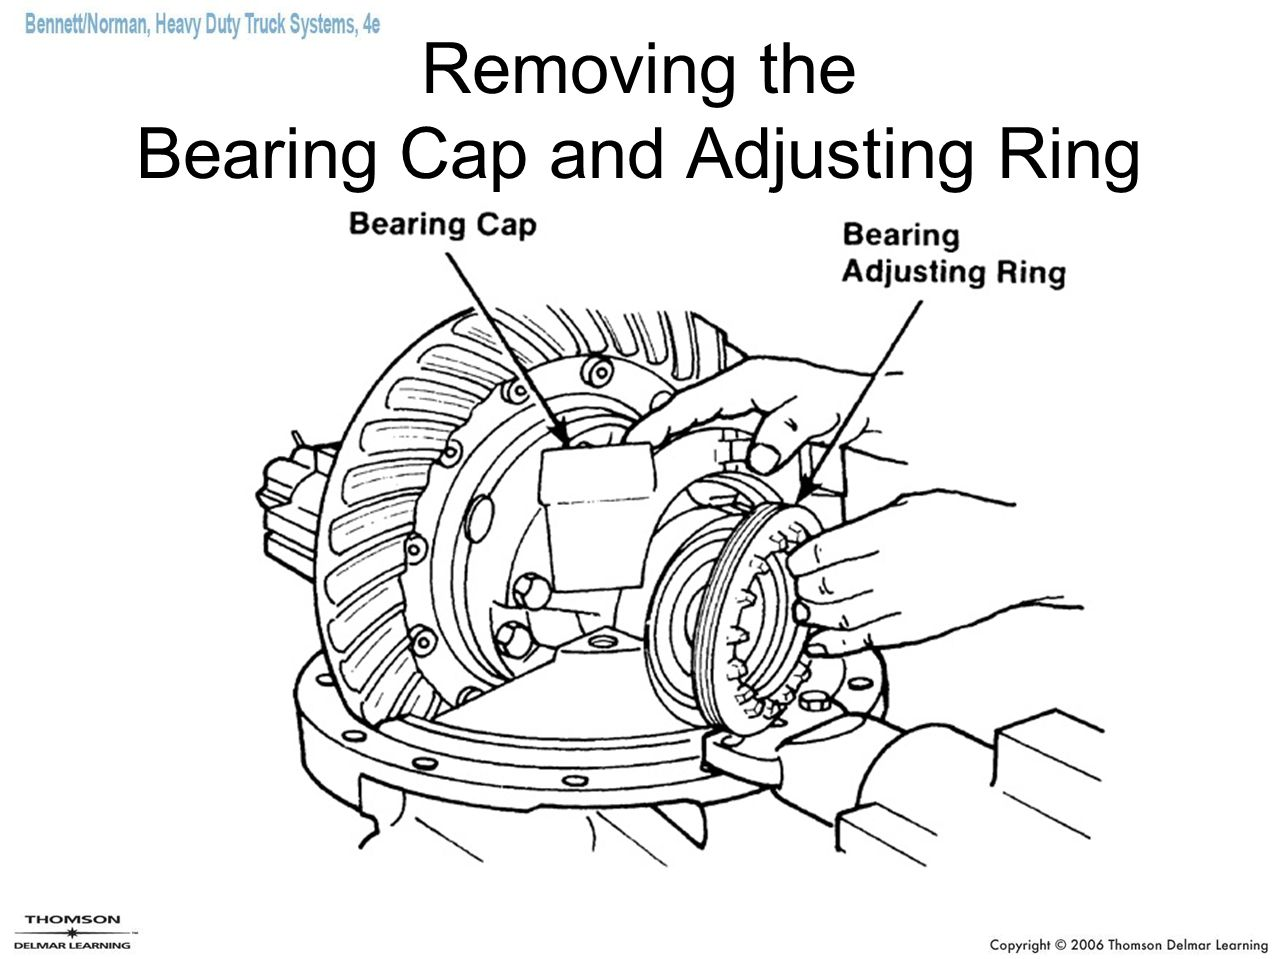 Removing the Bearing Cap and Adjusting Ring